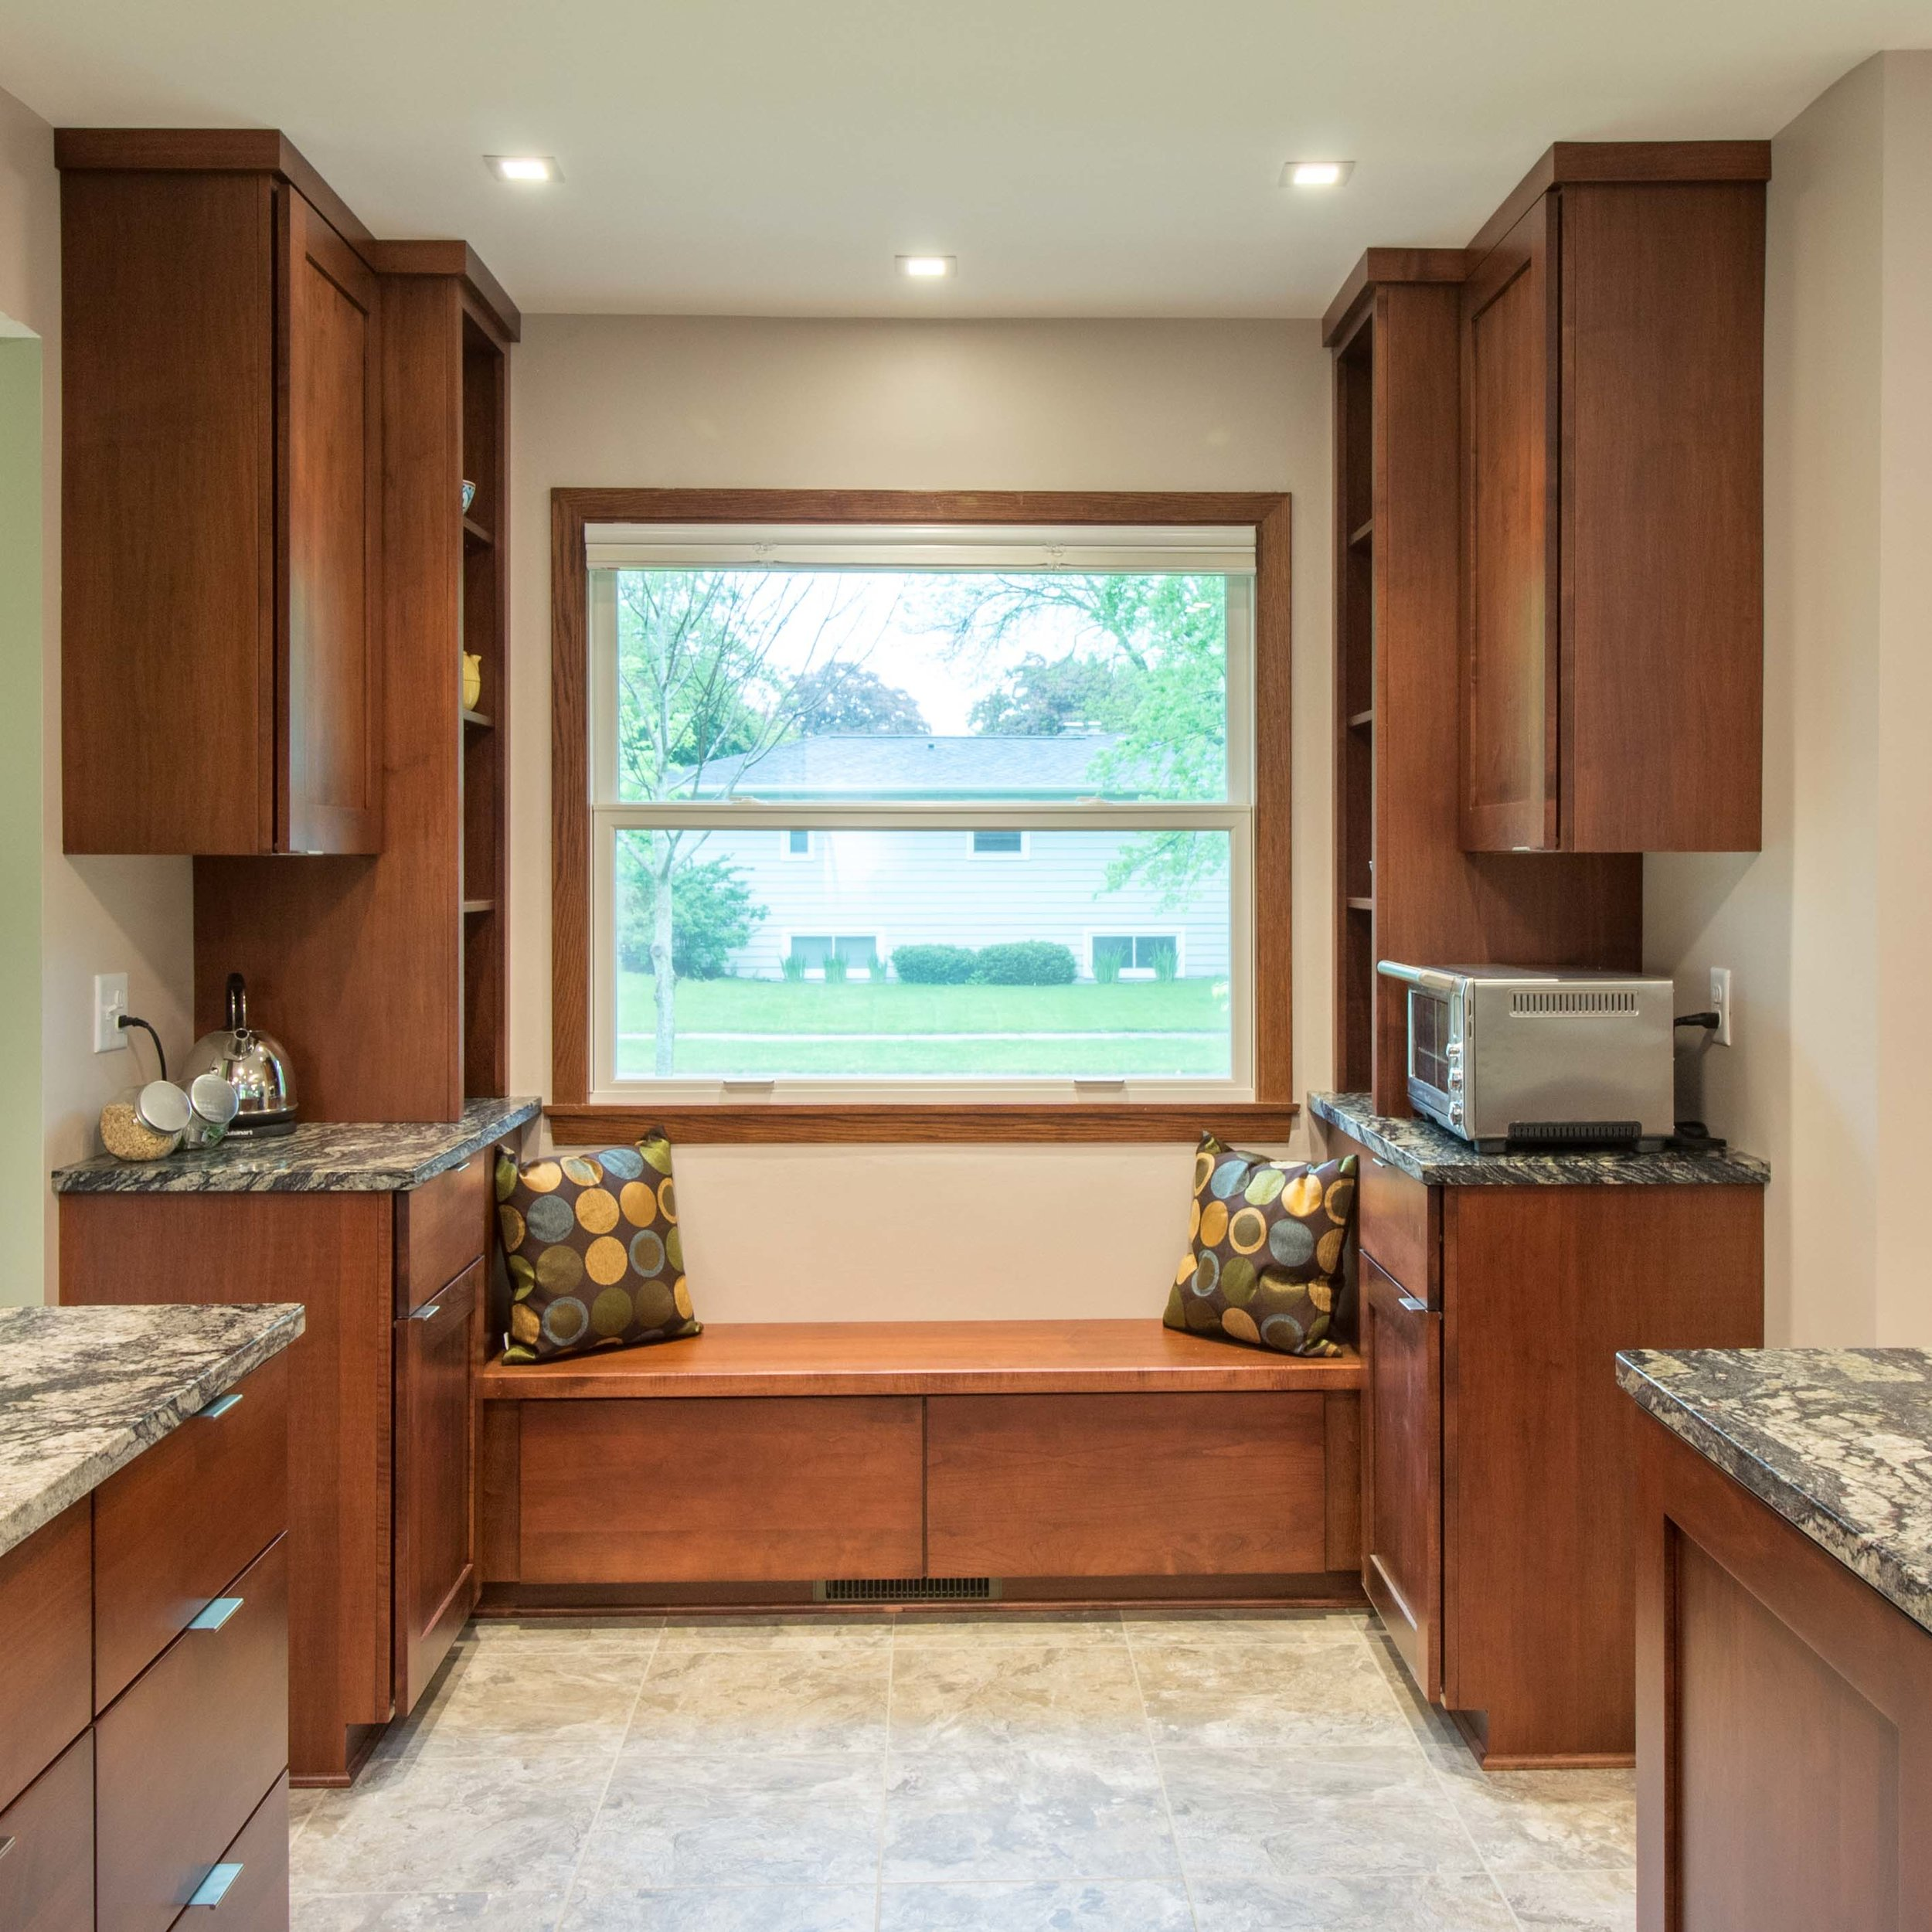 Custom Woodworking and cabinetry Built-In Seating Midvale heights Madison Wisconsin